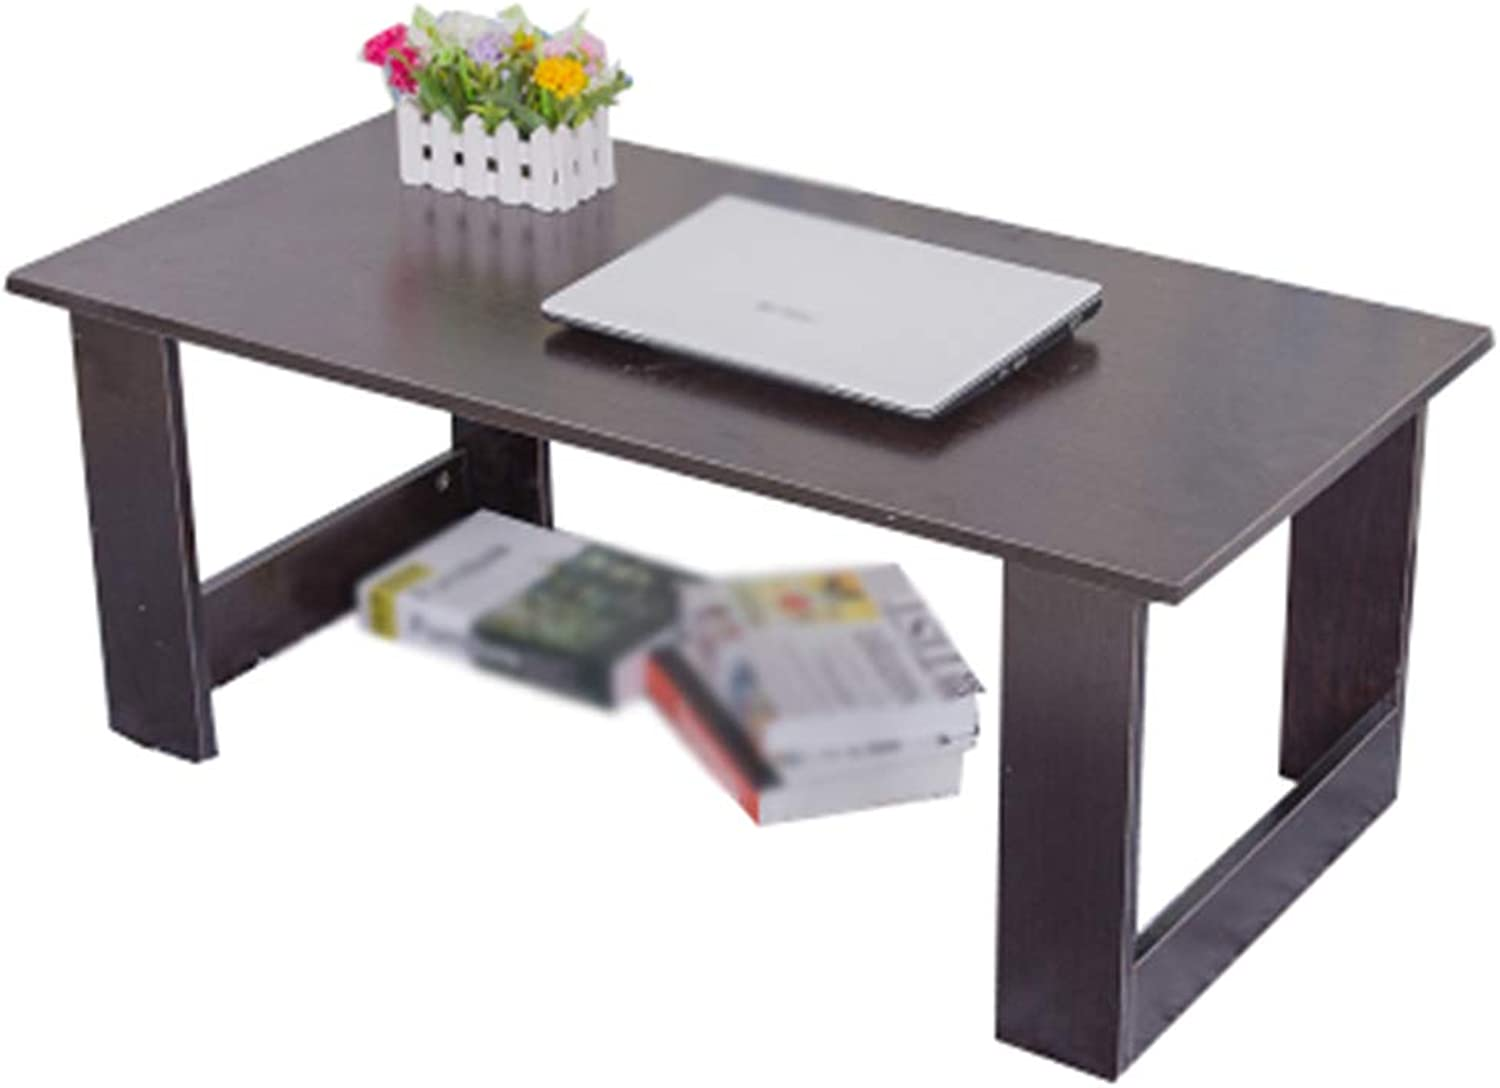 C-J-Xin Simple Tea Table, Living Room Bedroom Wooden Table Low Table Laptop Table Balcony Office Study Coffee Table Multifunction Household table (color   A, Size   80  40  31cm)